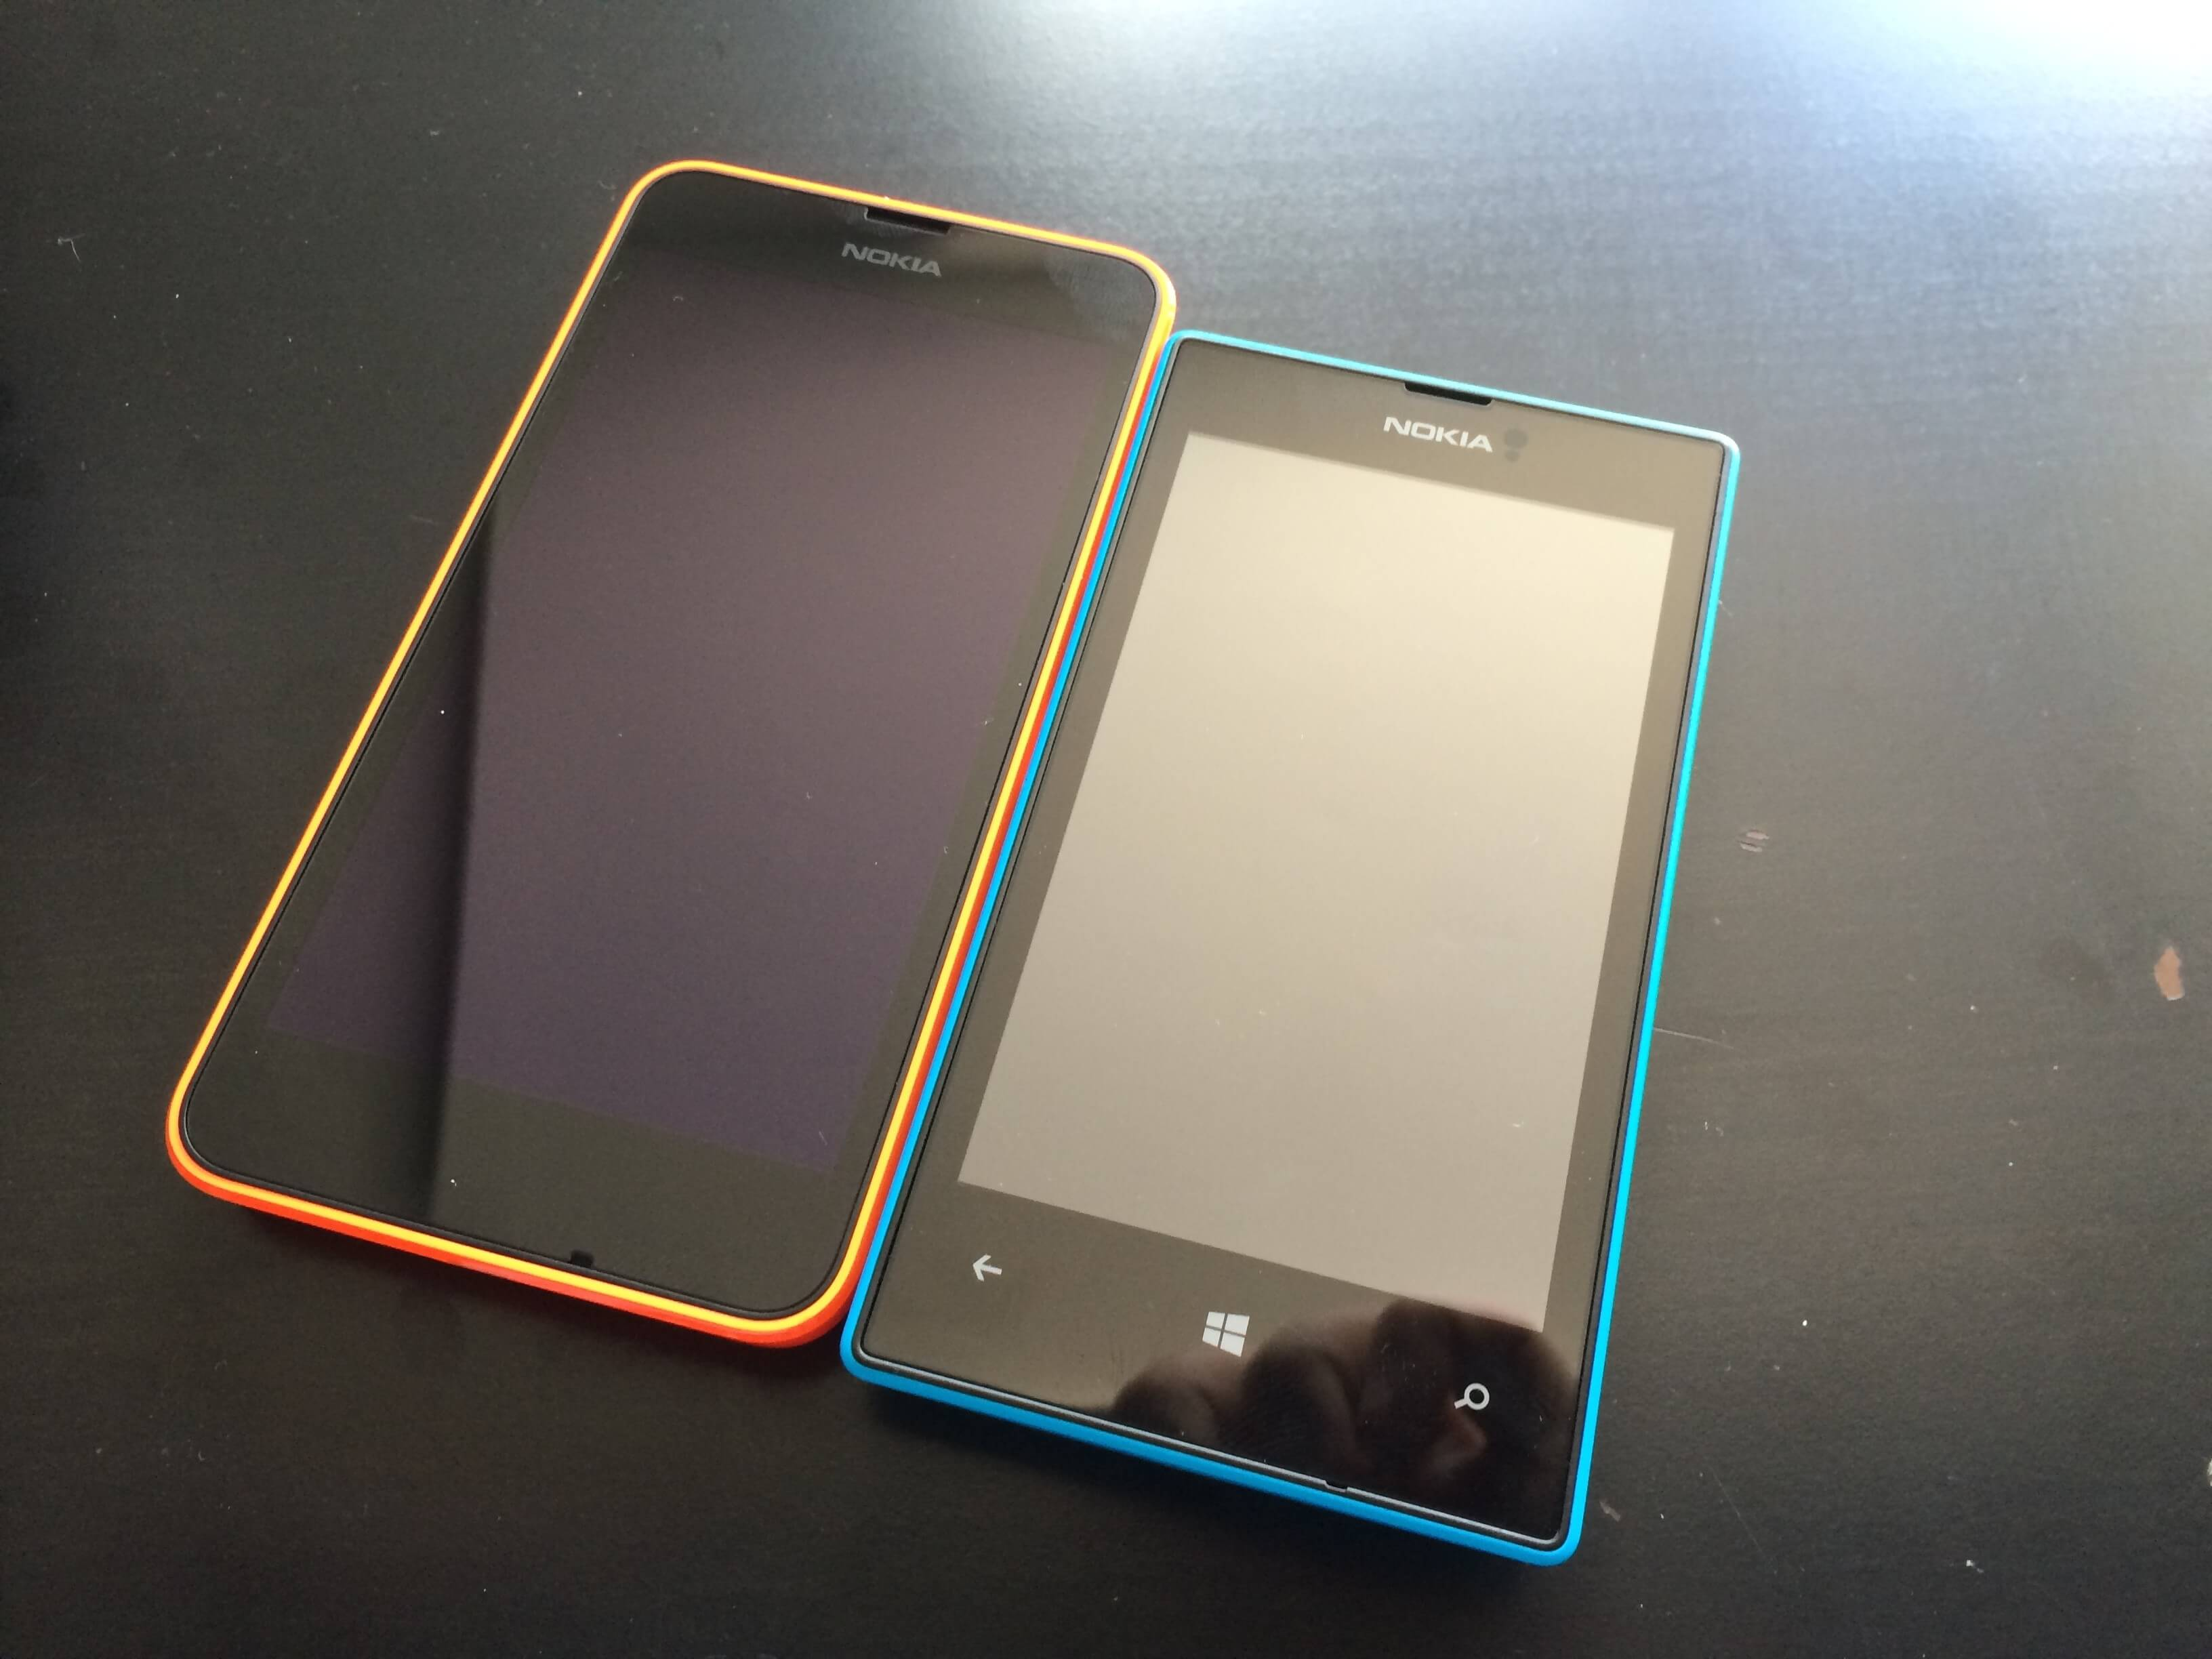 Nokia Lumia 635 Review Powerful For The Price 520 8gb Red And